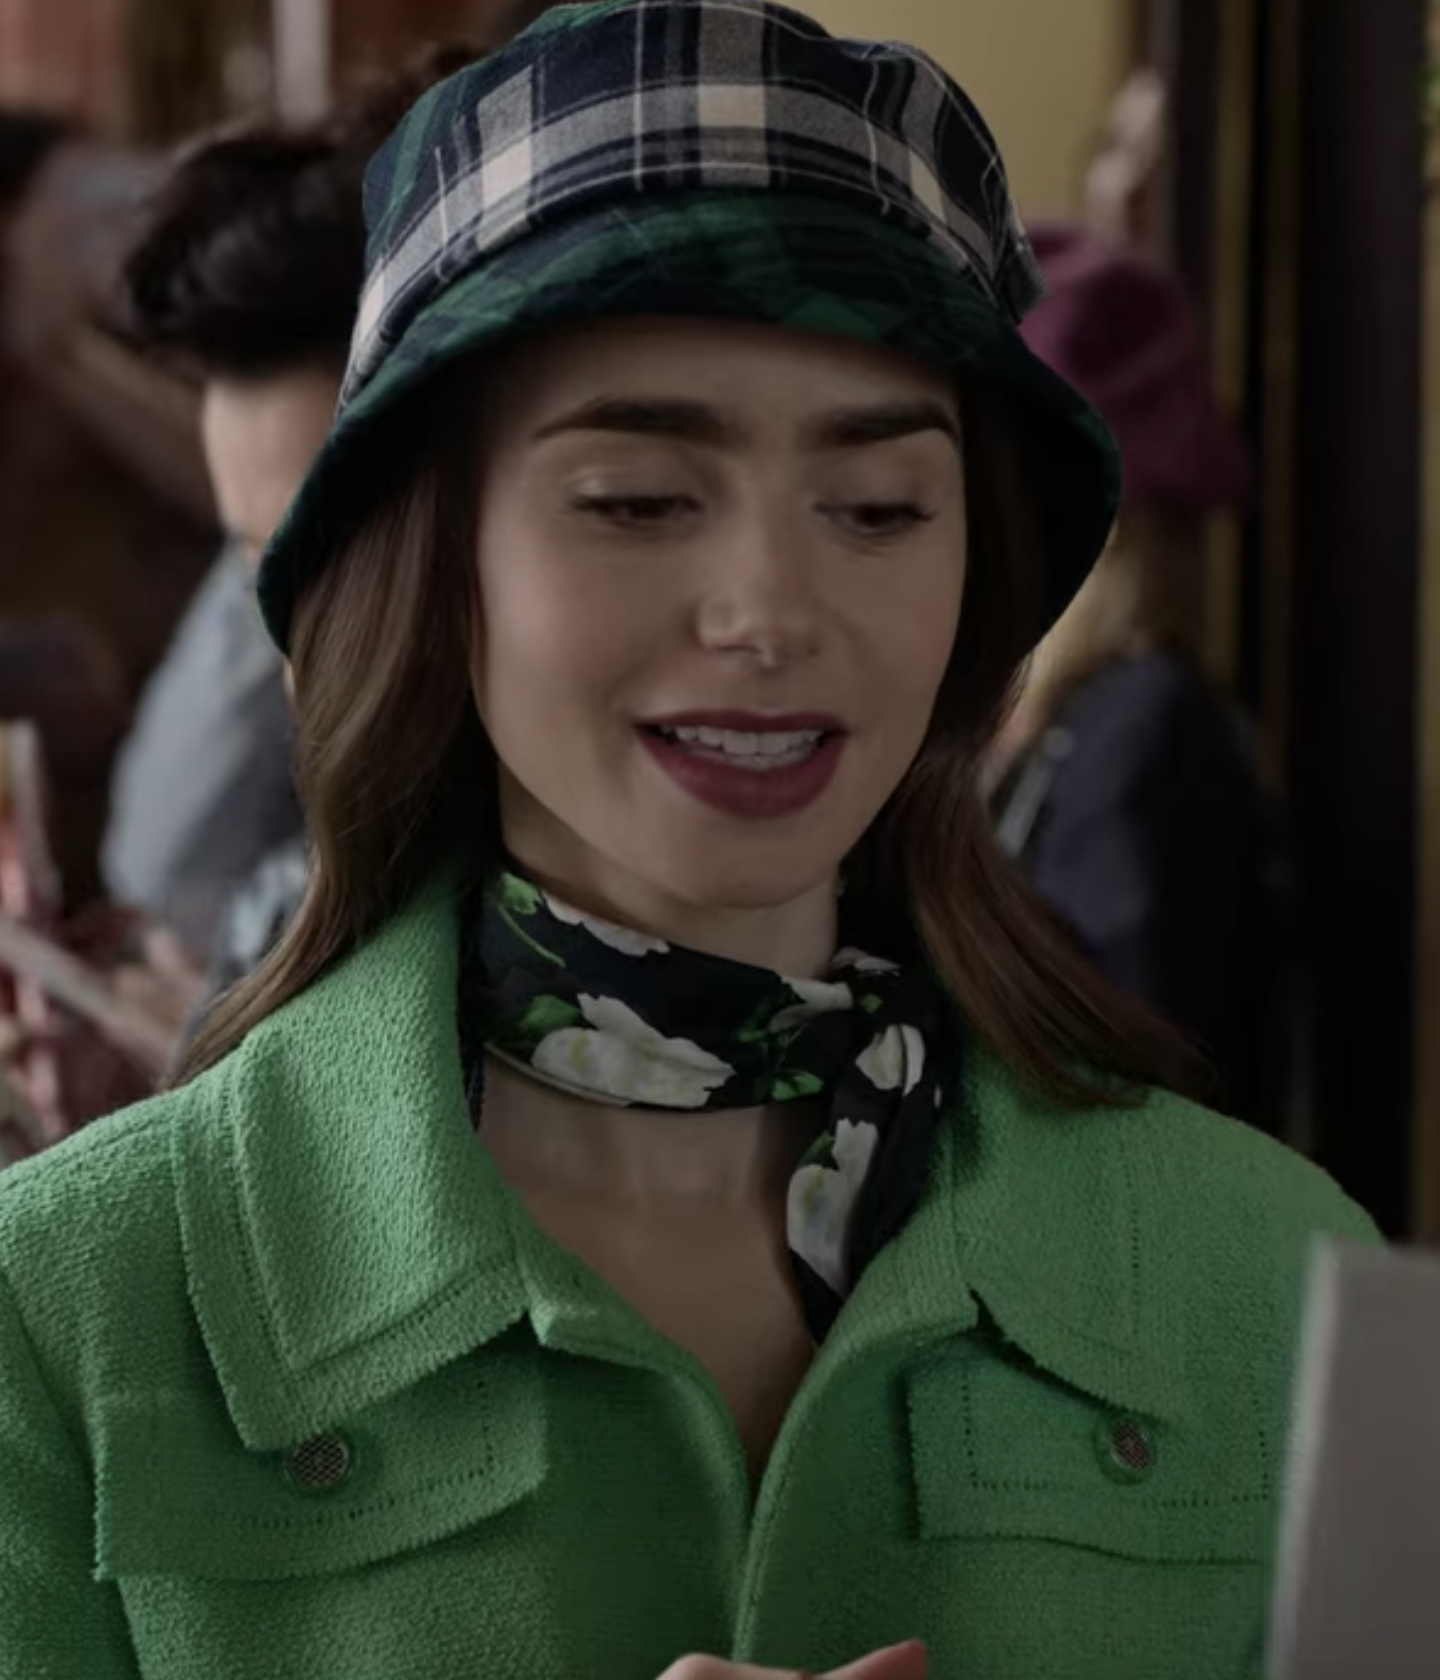 Emily looks downwards while wearing a green plaid bucket hat, a black neckerchief with white flowers, and a green coat